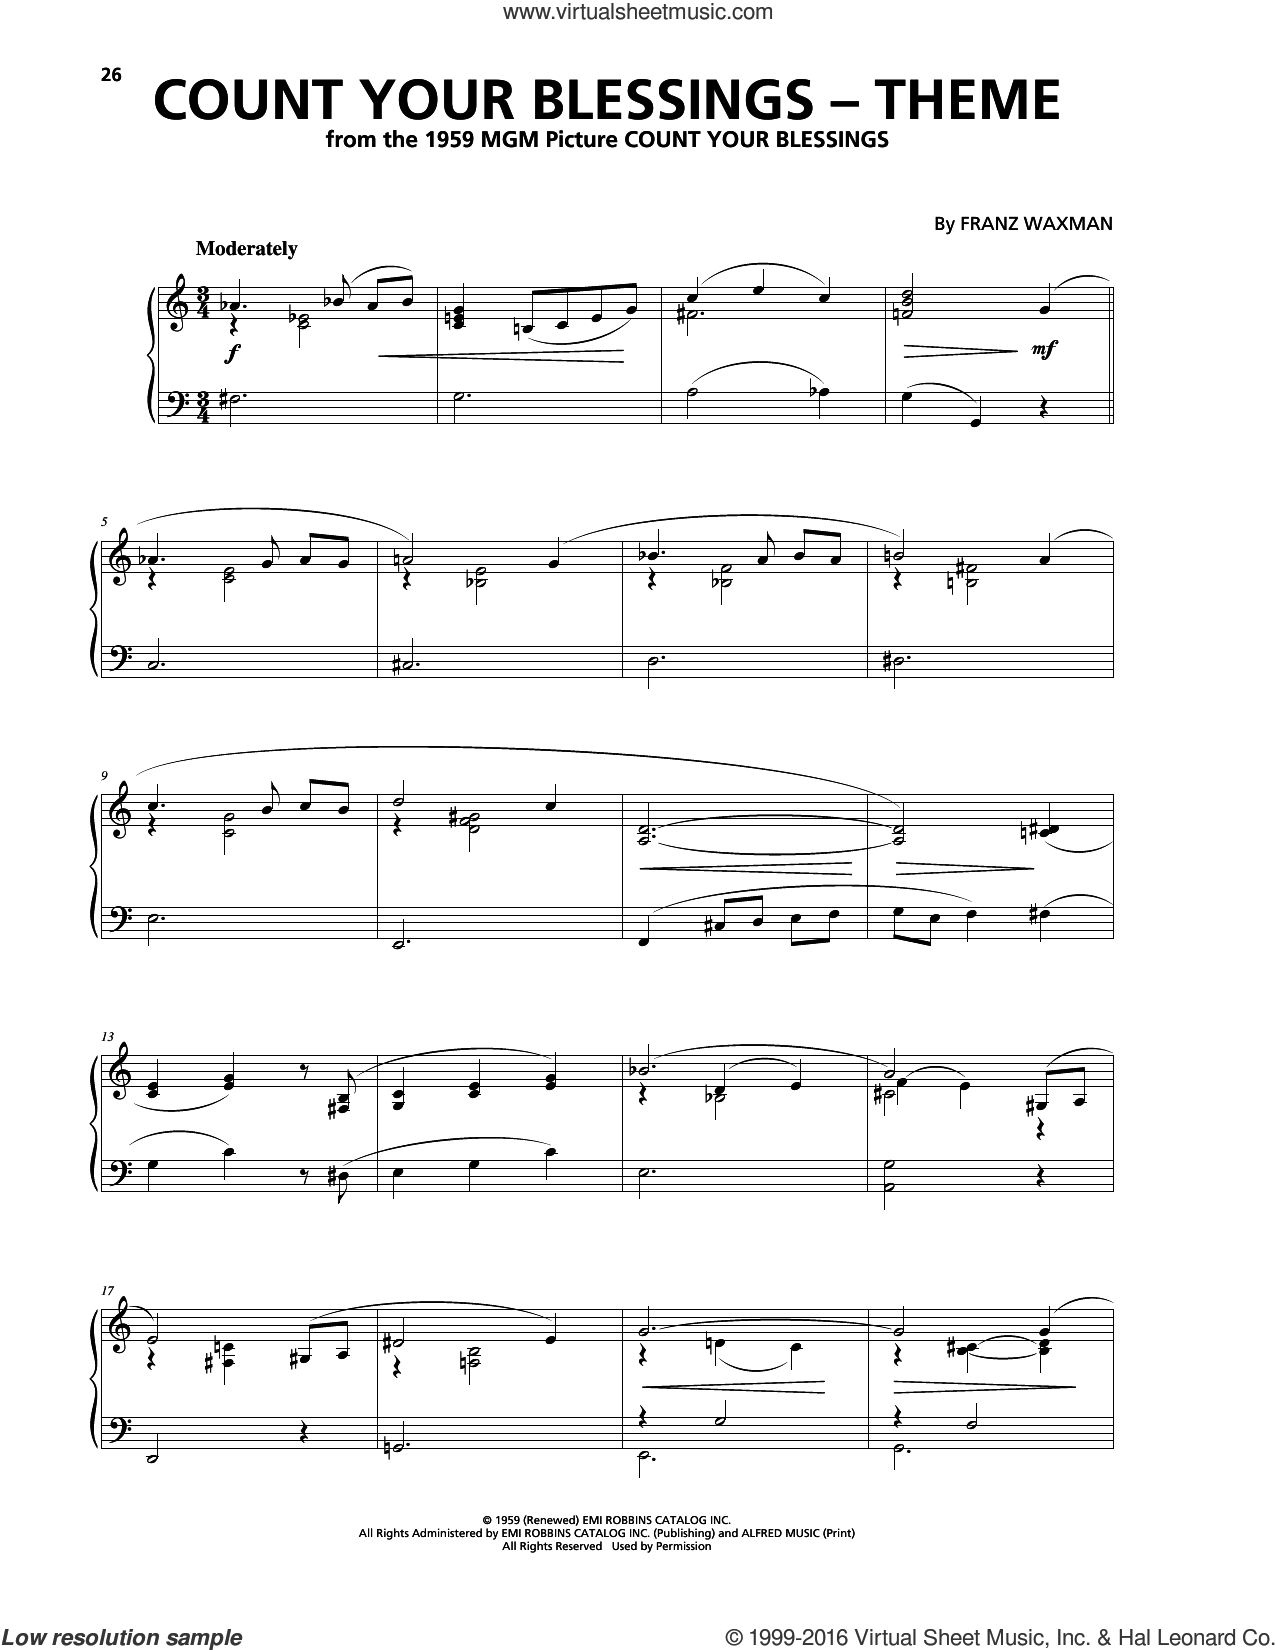 Count Your Blessings (Theme) sheet music for piano solo by Franz Waxman, intermediate. Score Image Preview.